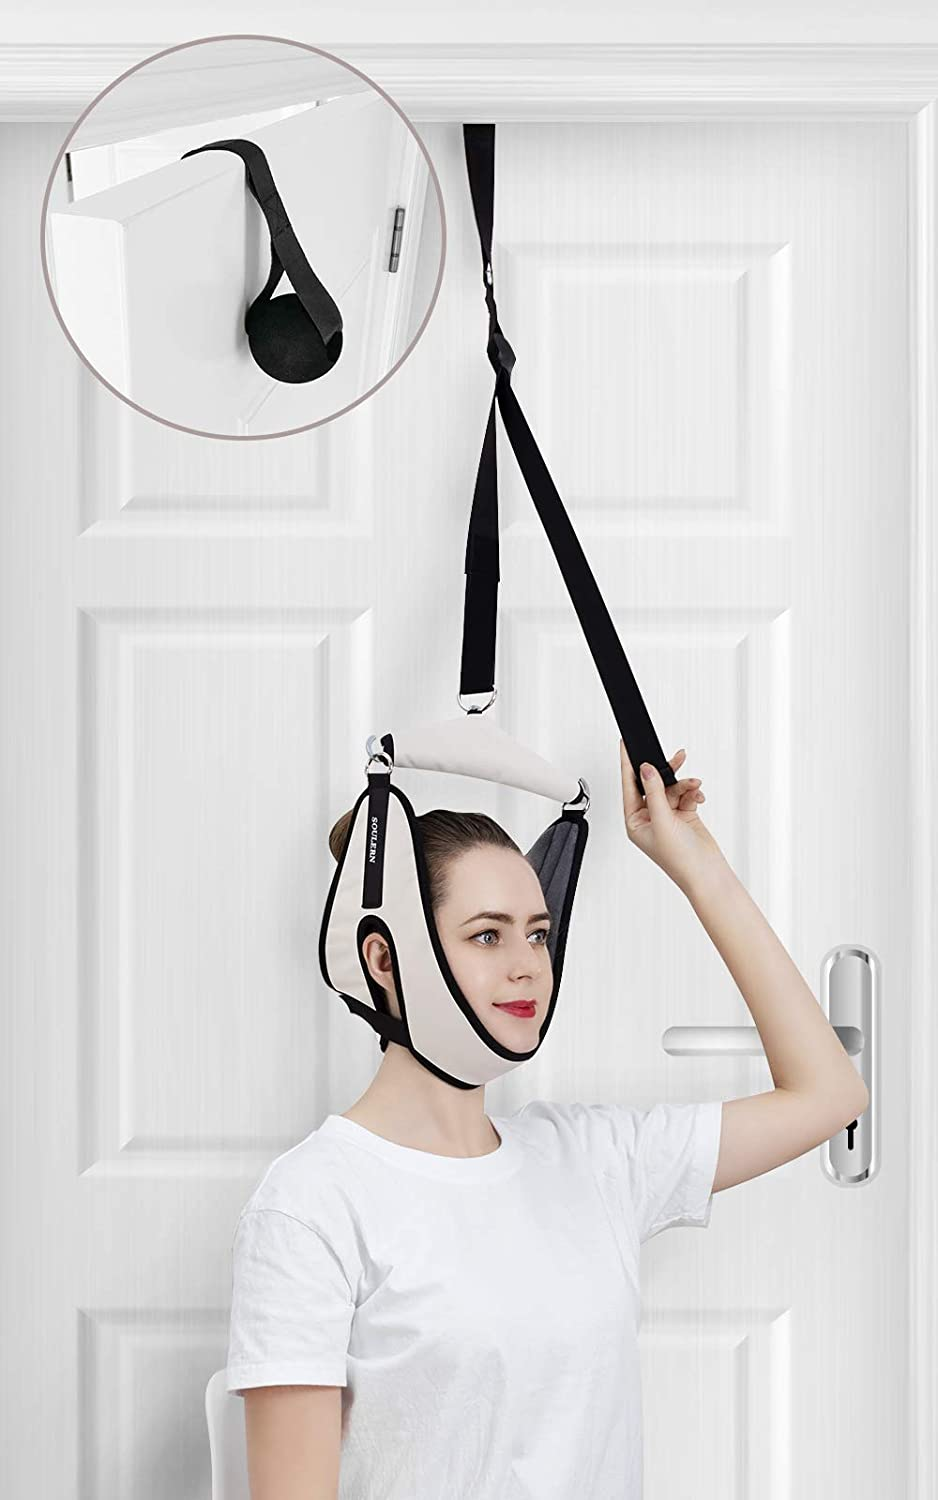 Cervical Neck Traction Device, Neck Stretcher for Pain Relief, Over Door Cervical Traction for Cervical Spine, Neck Traction Device for Chronic Neck Pain, Arthritis, Disc Bulge